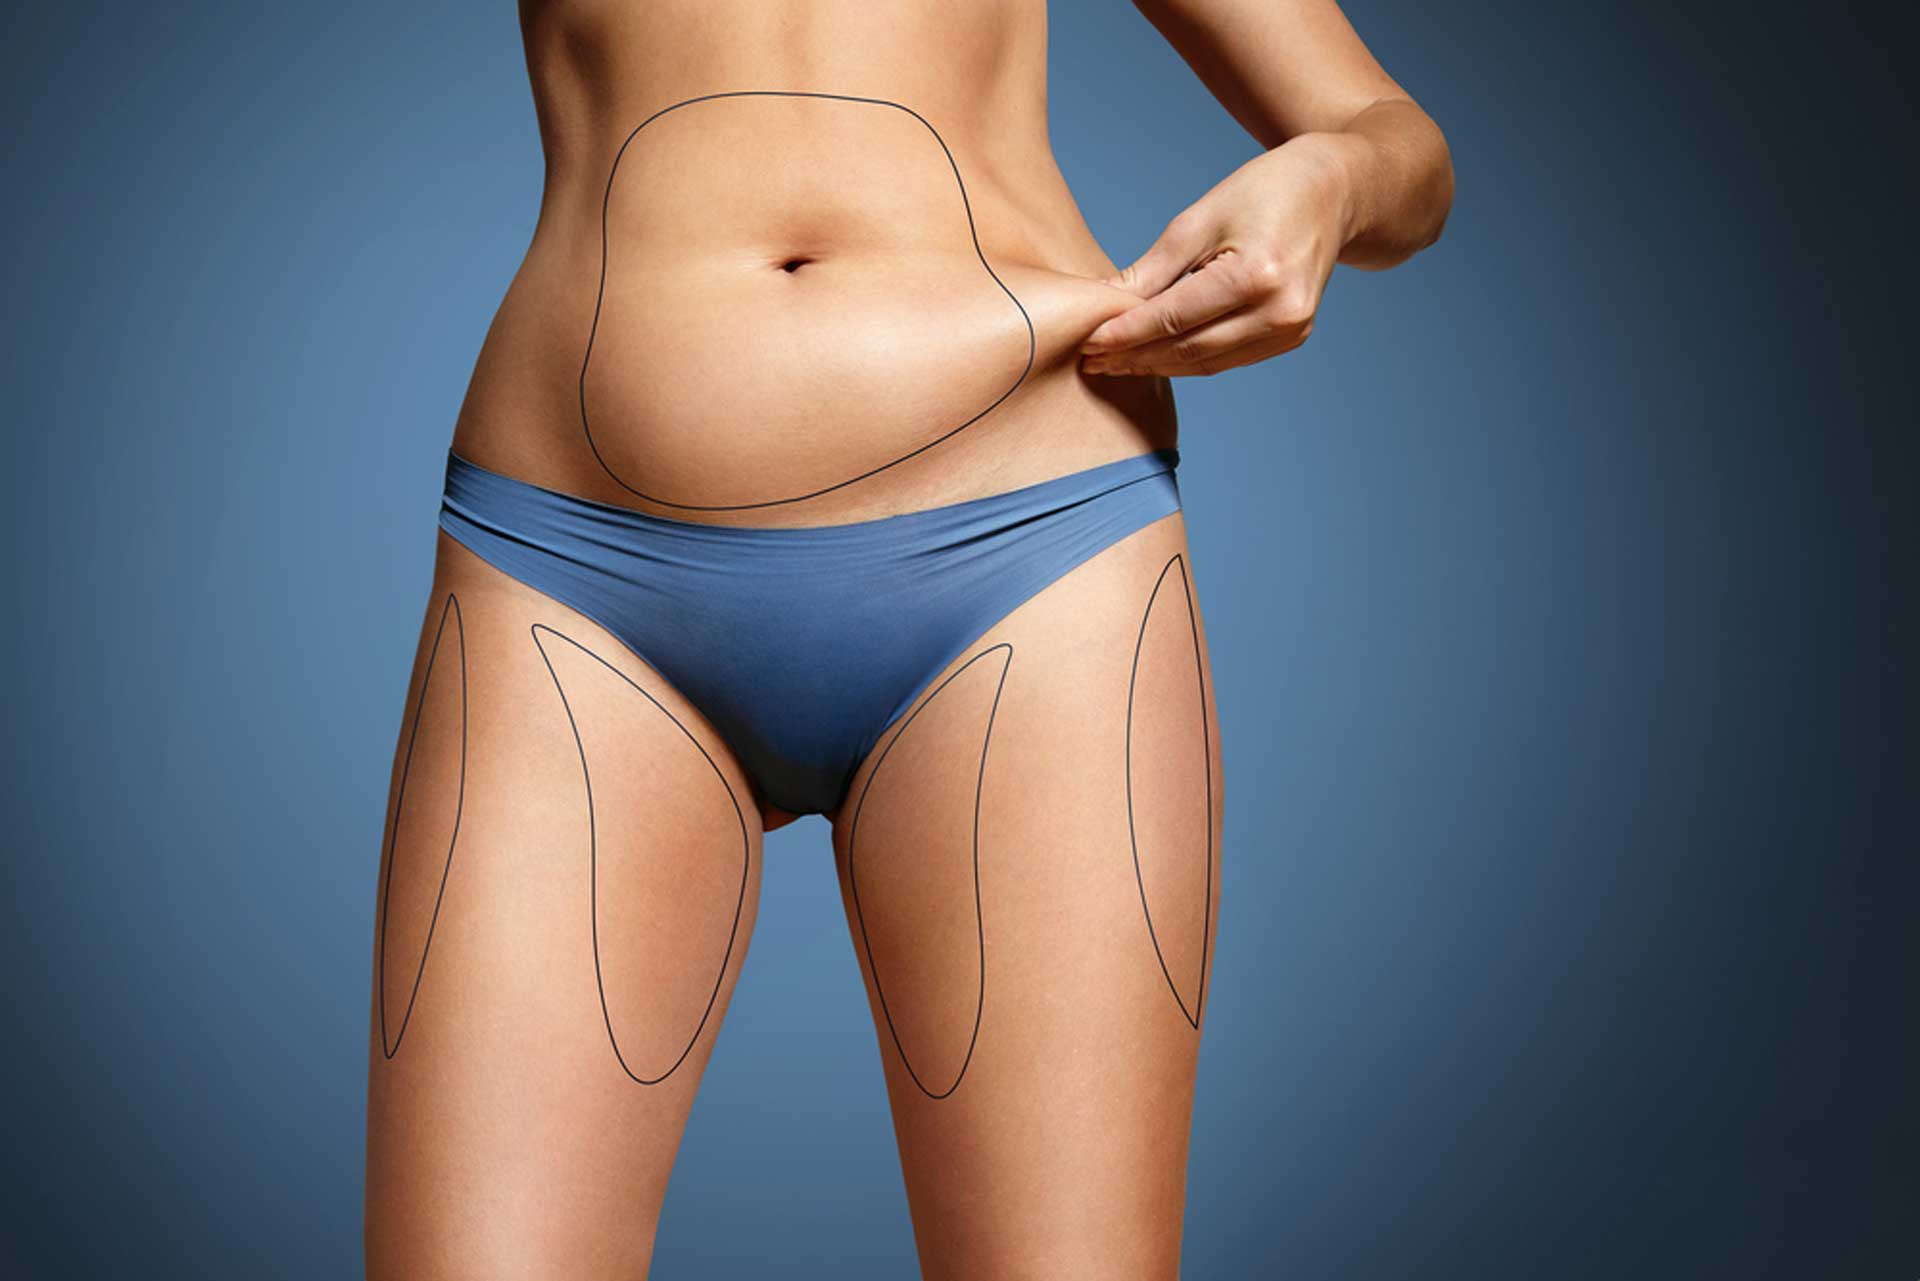 Liposuction vs. Non-Surgical Fat Reduction: Pros & Cons | Aha!NOW